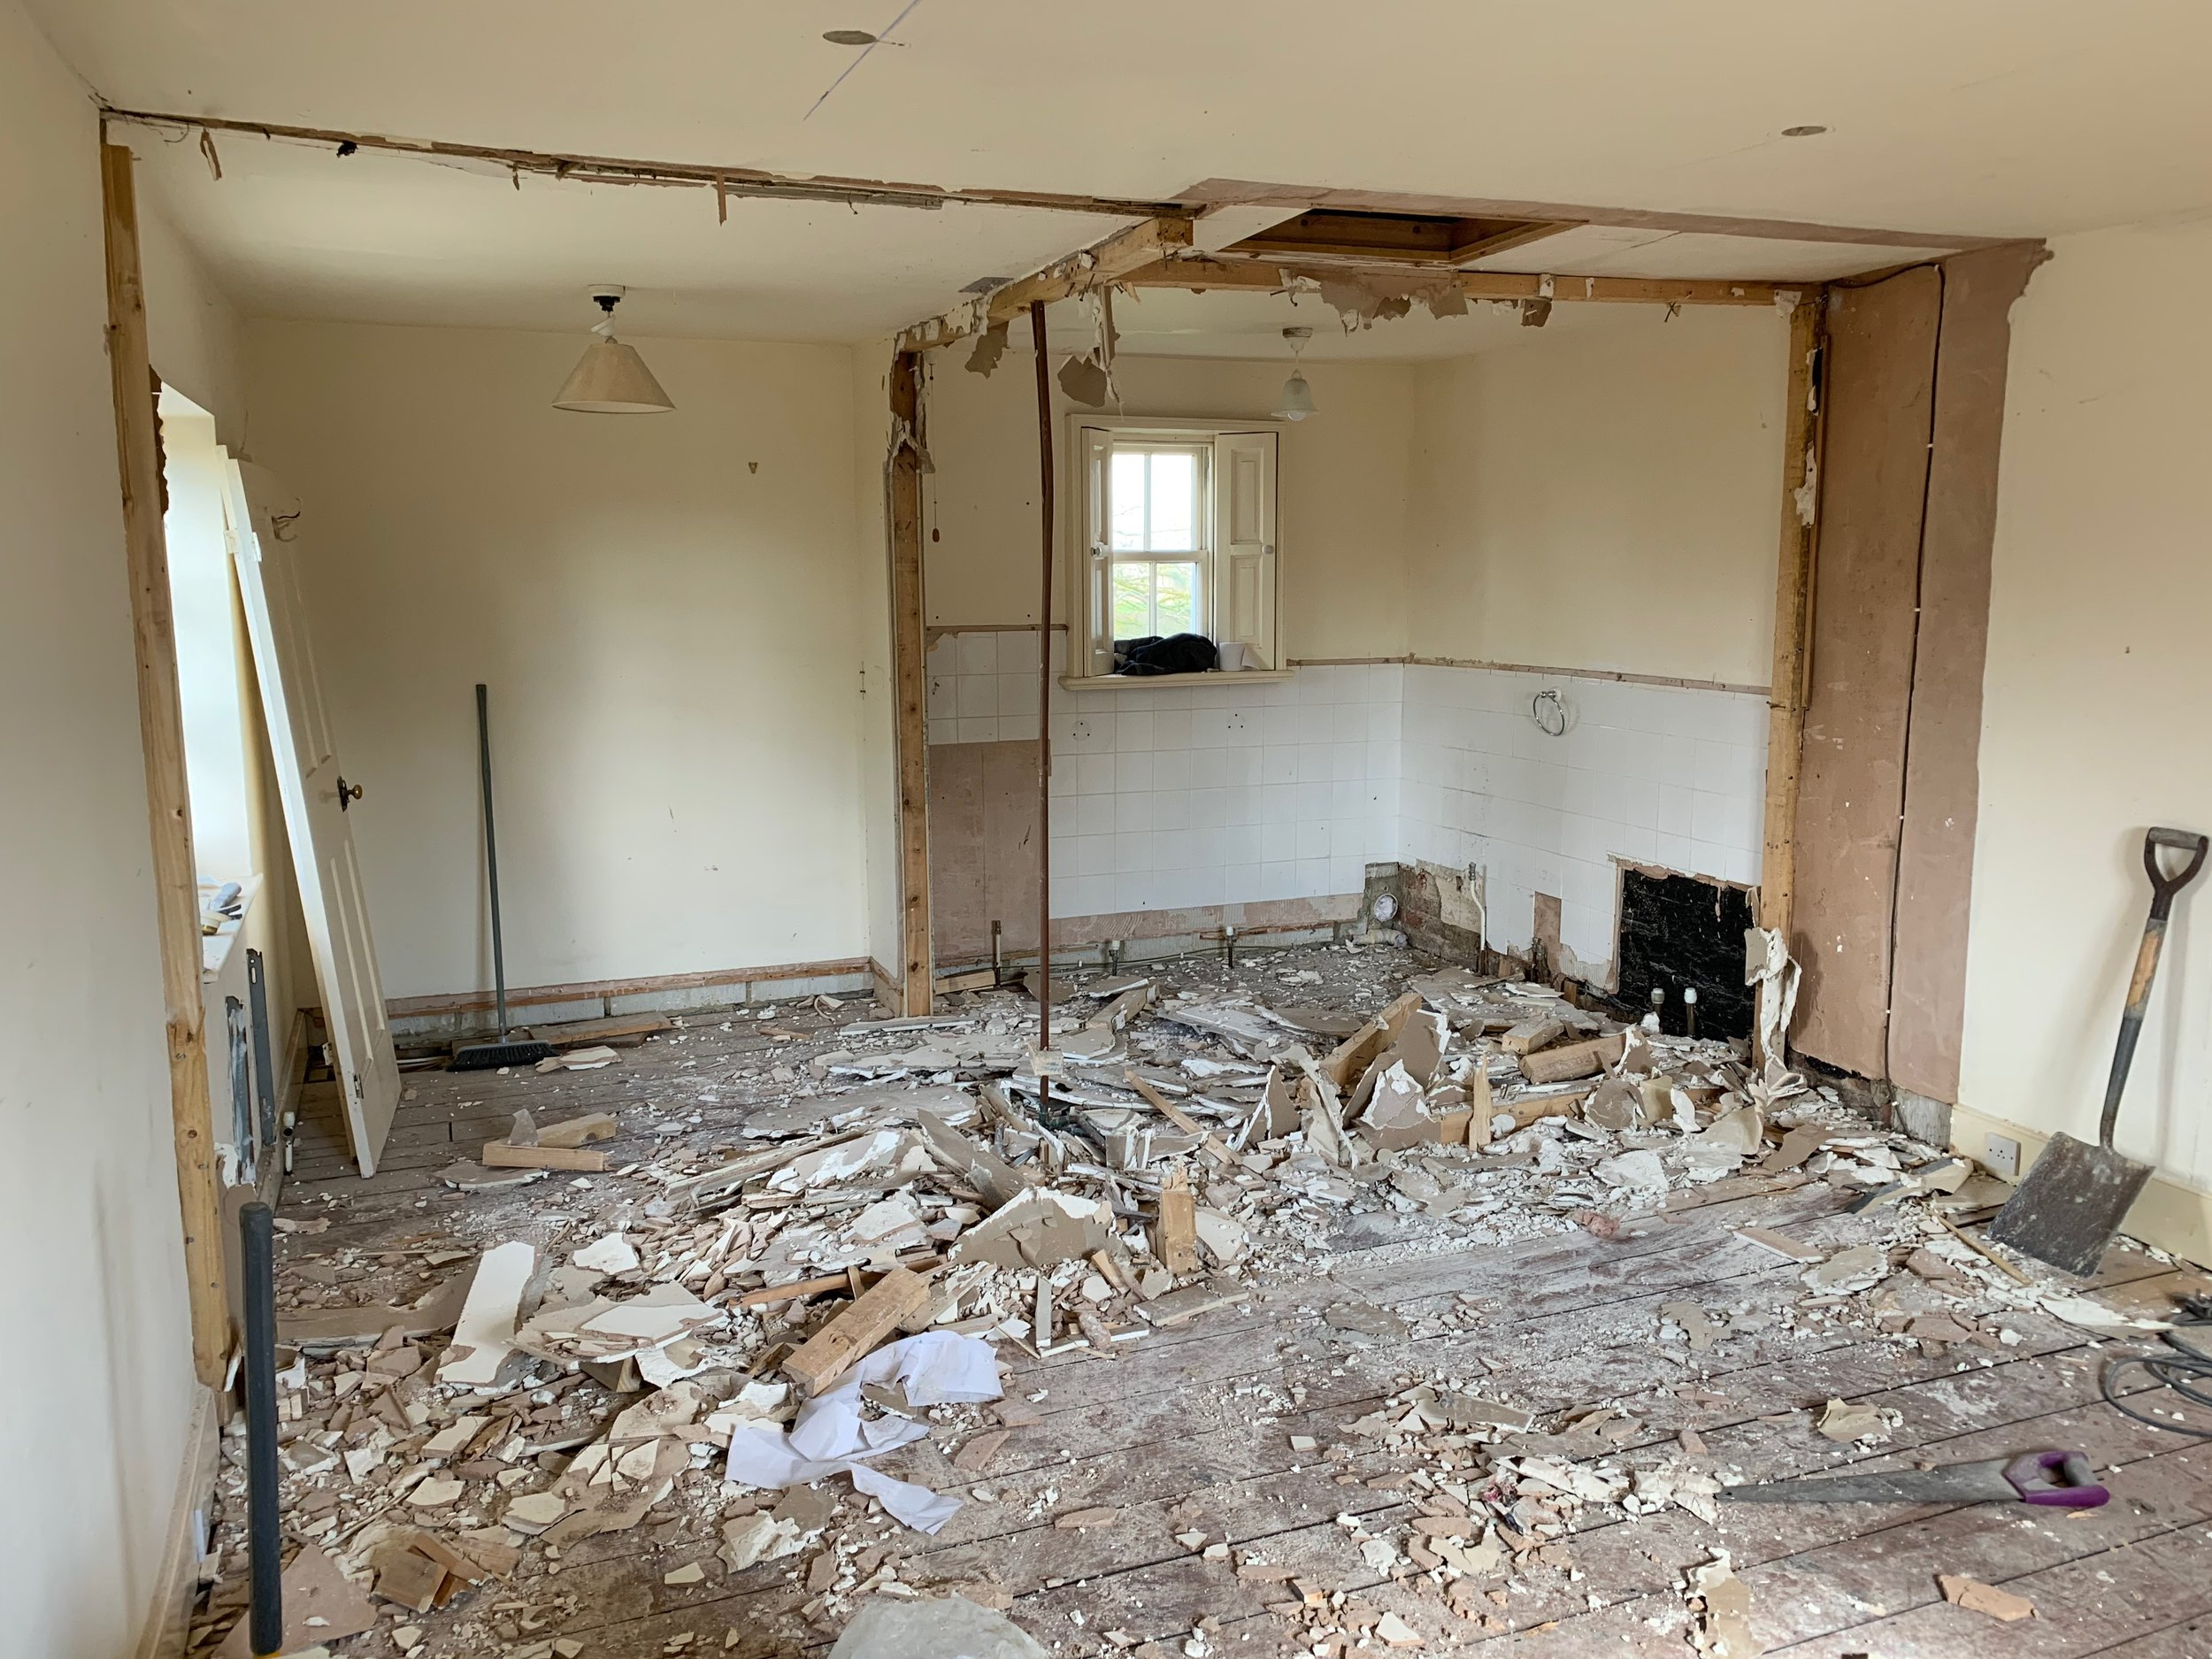 Reconfiguring the layout of the master bedroom to create an en-suite.